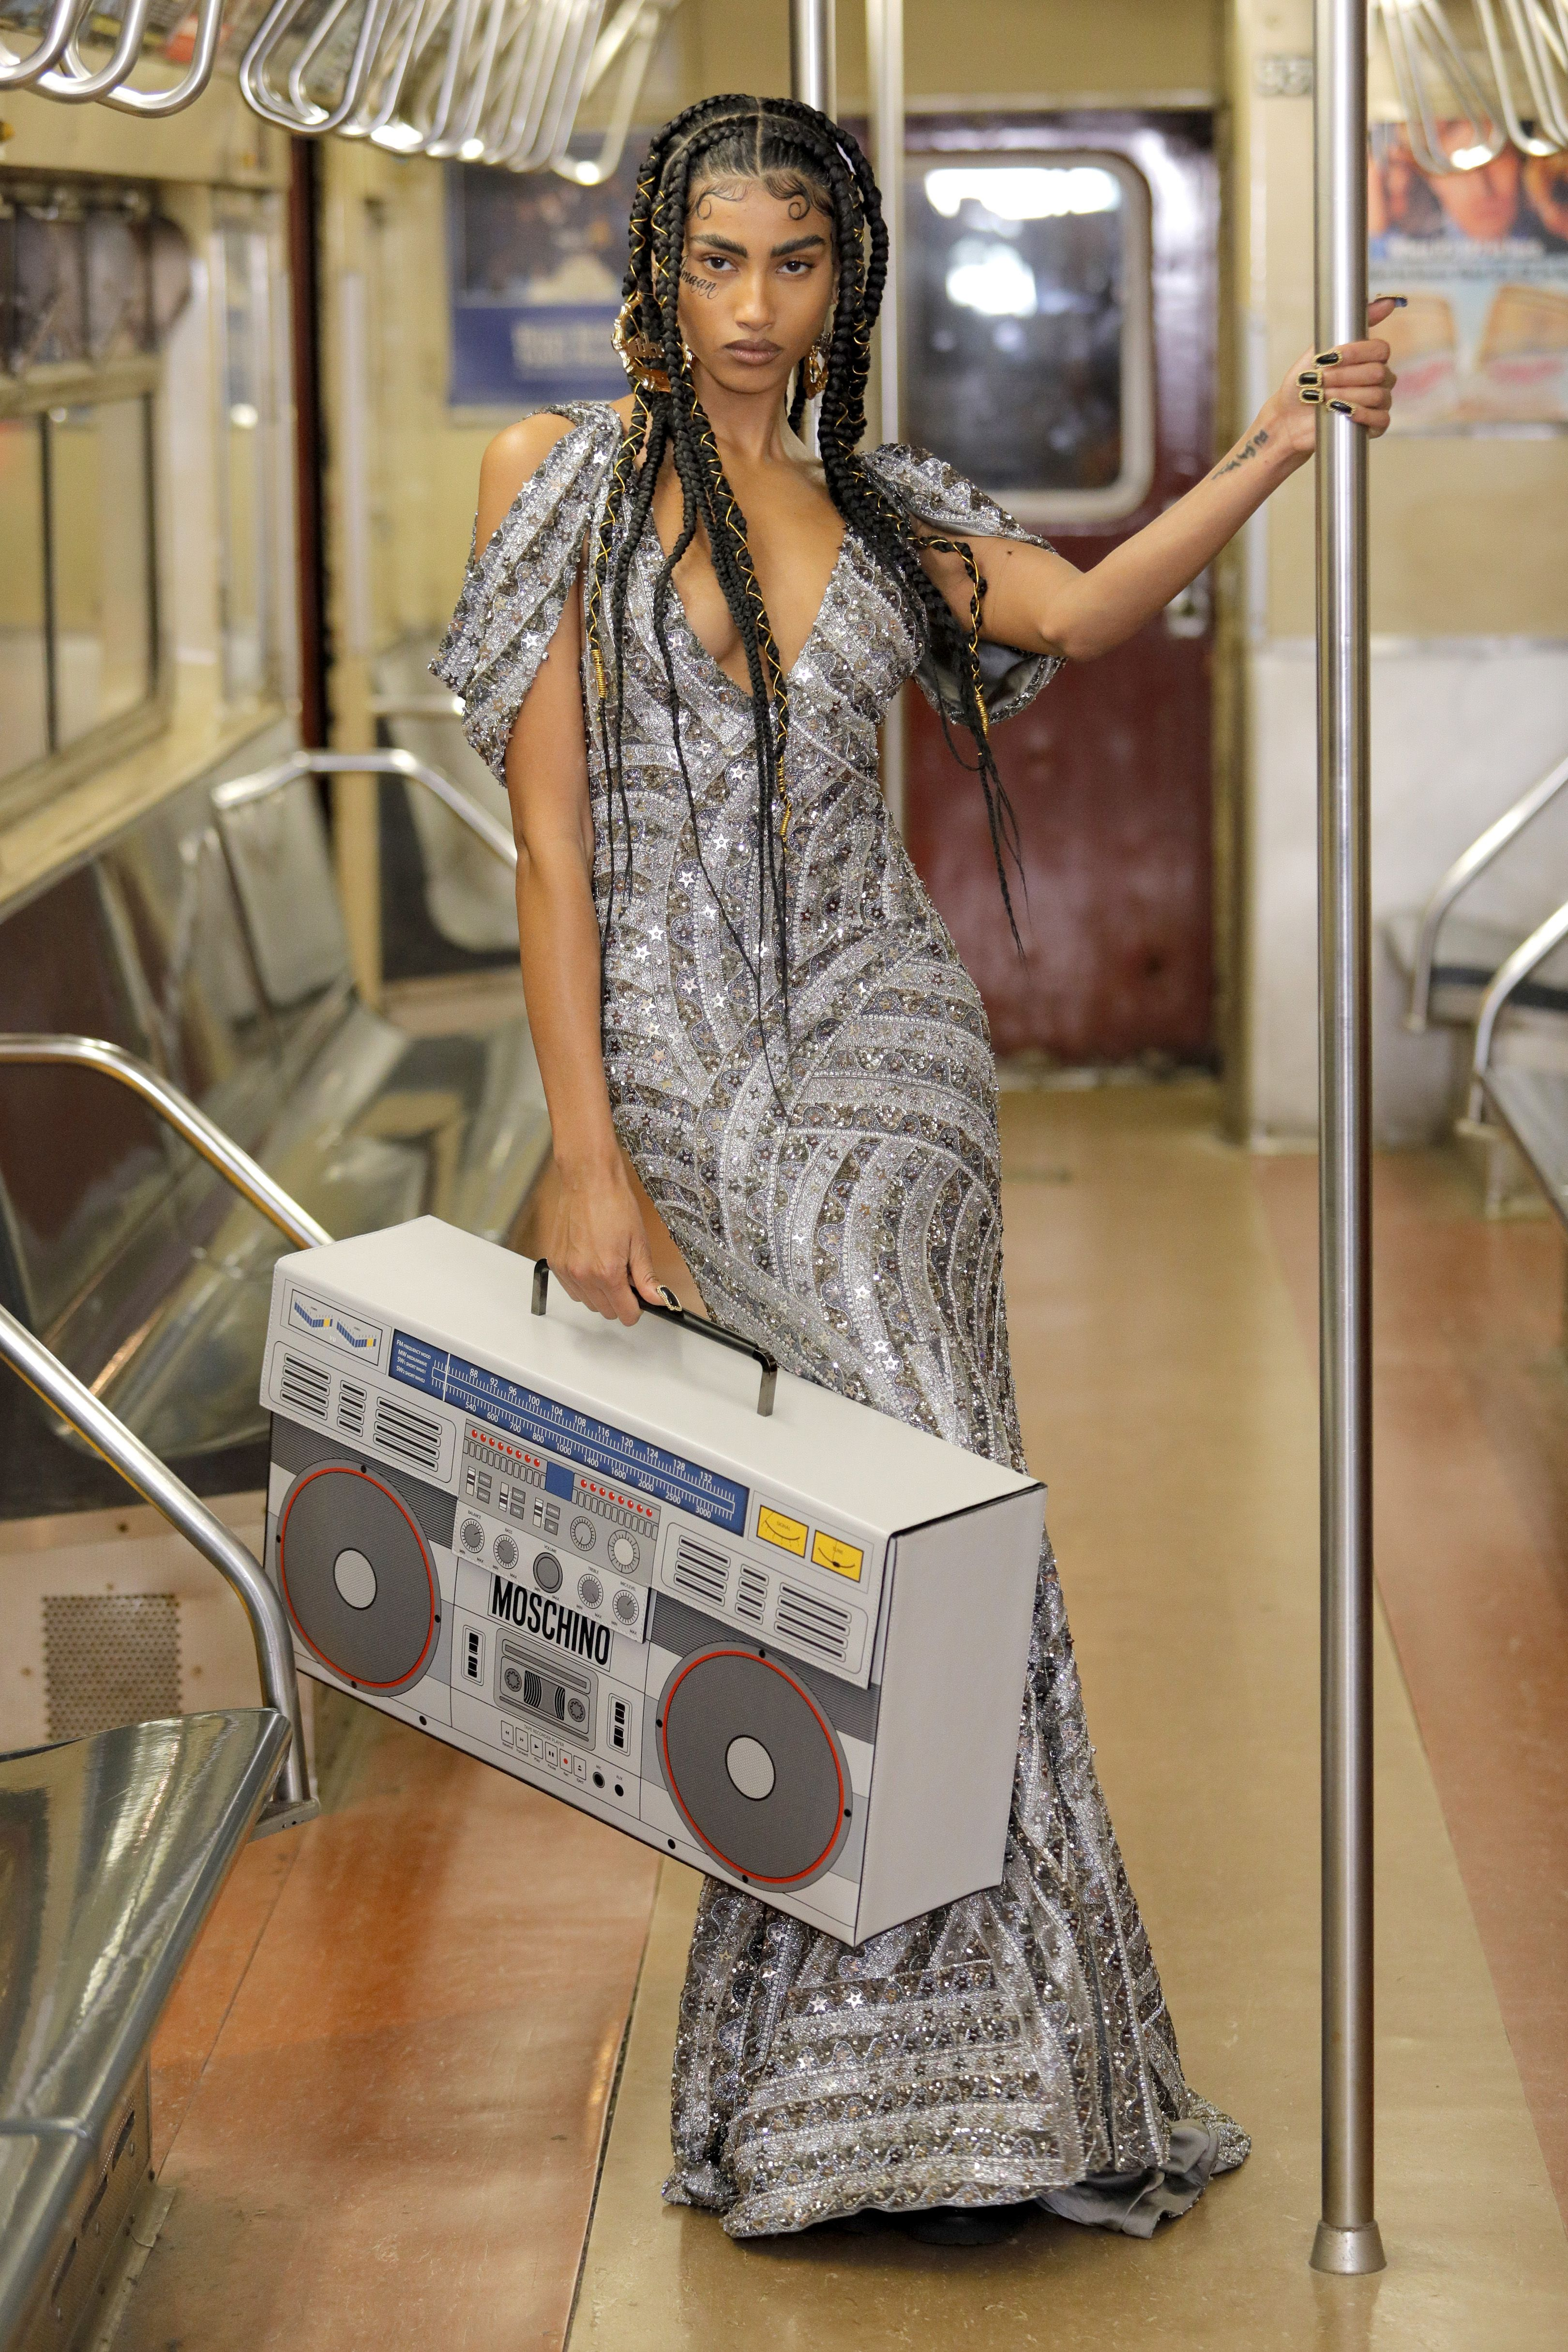 Moschino Makes the Subway Look Chic